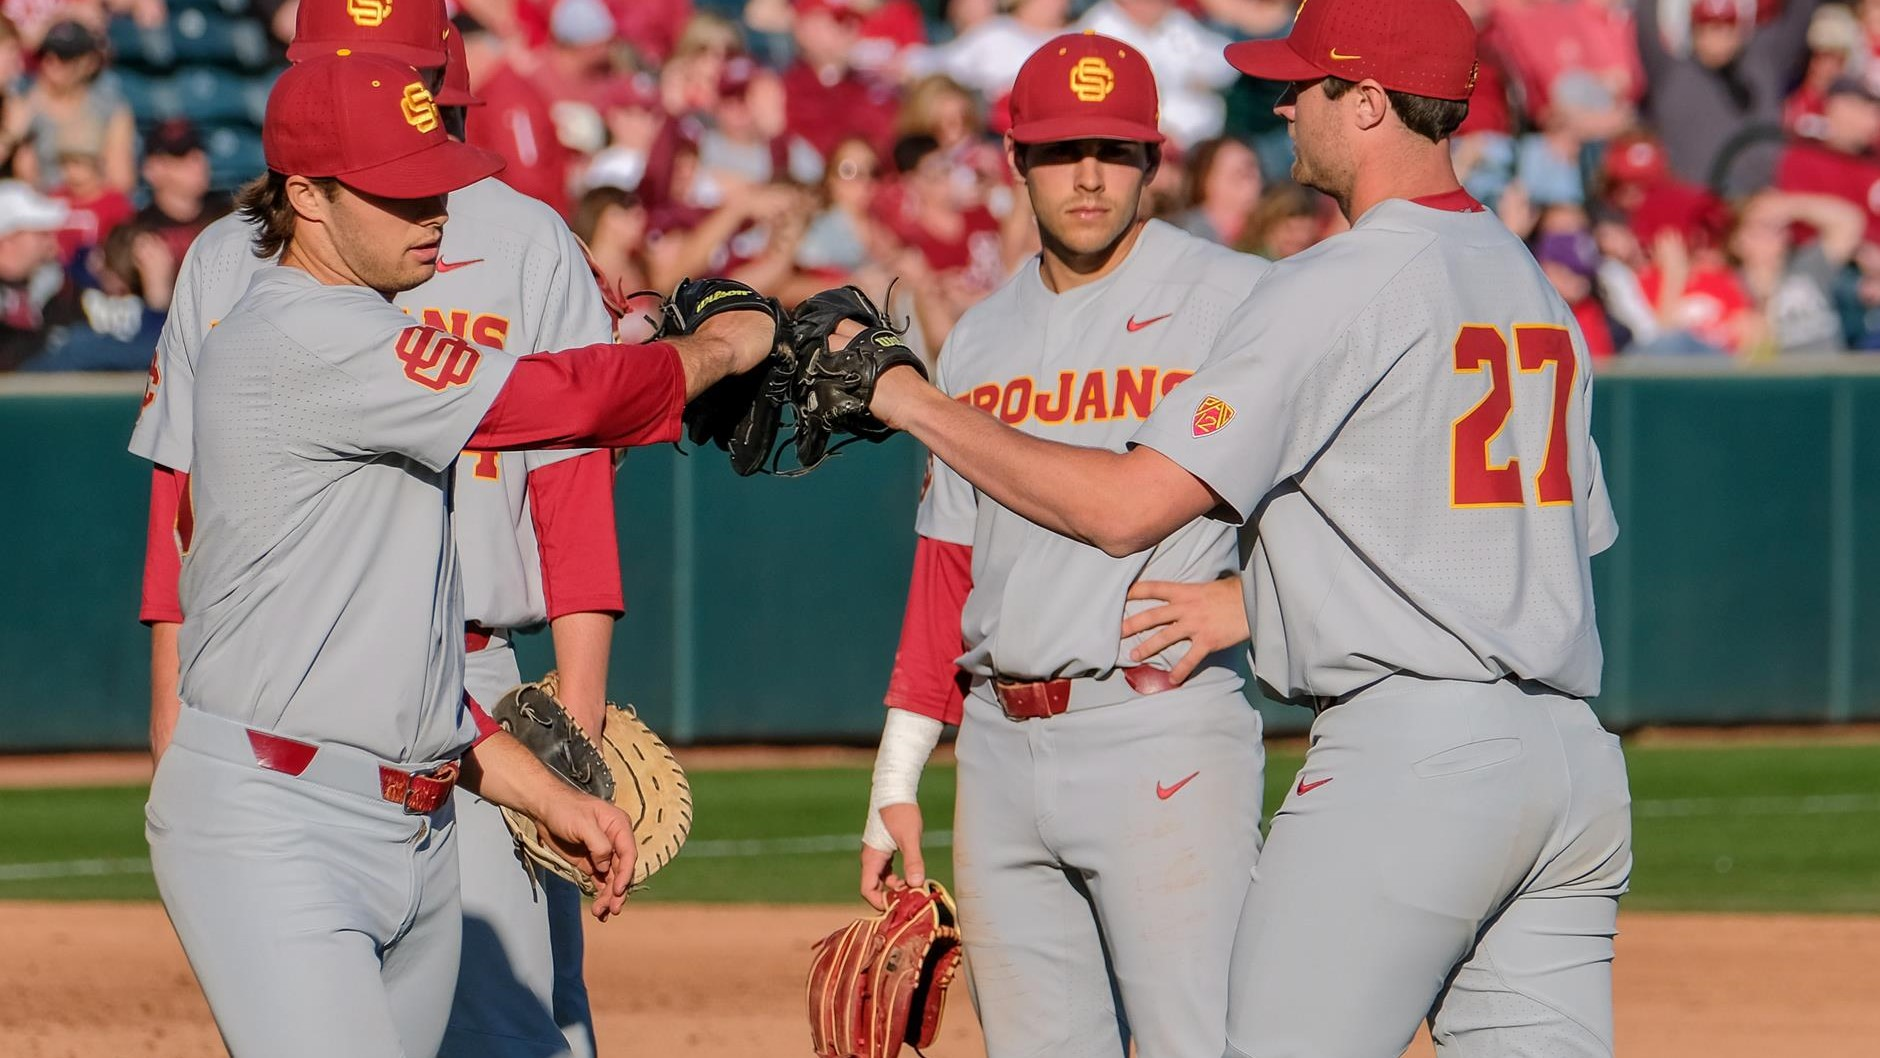 trojans continue pac-12 play at arizona state - usc athletics